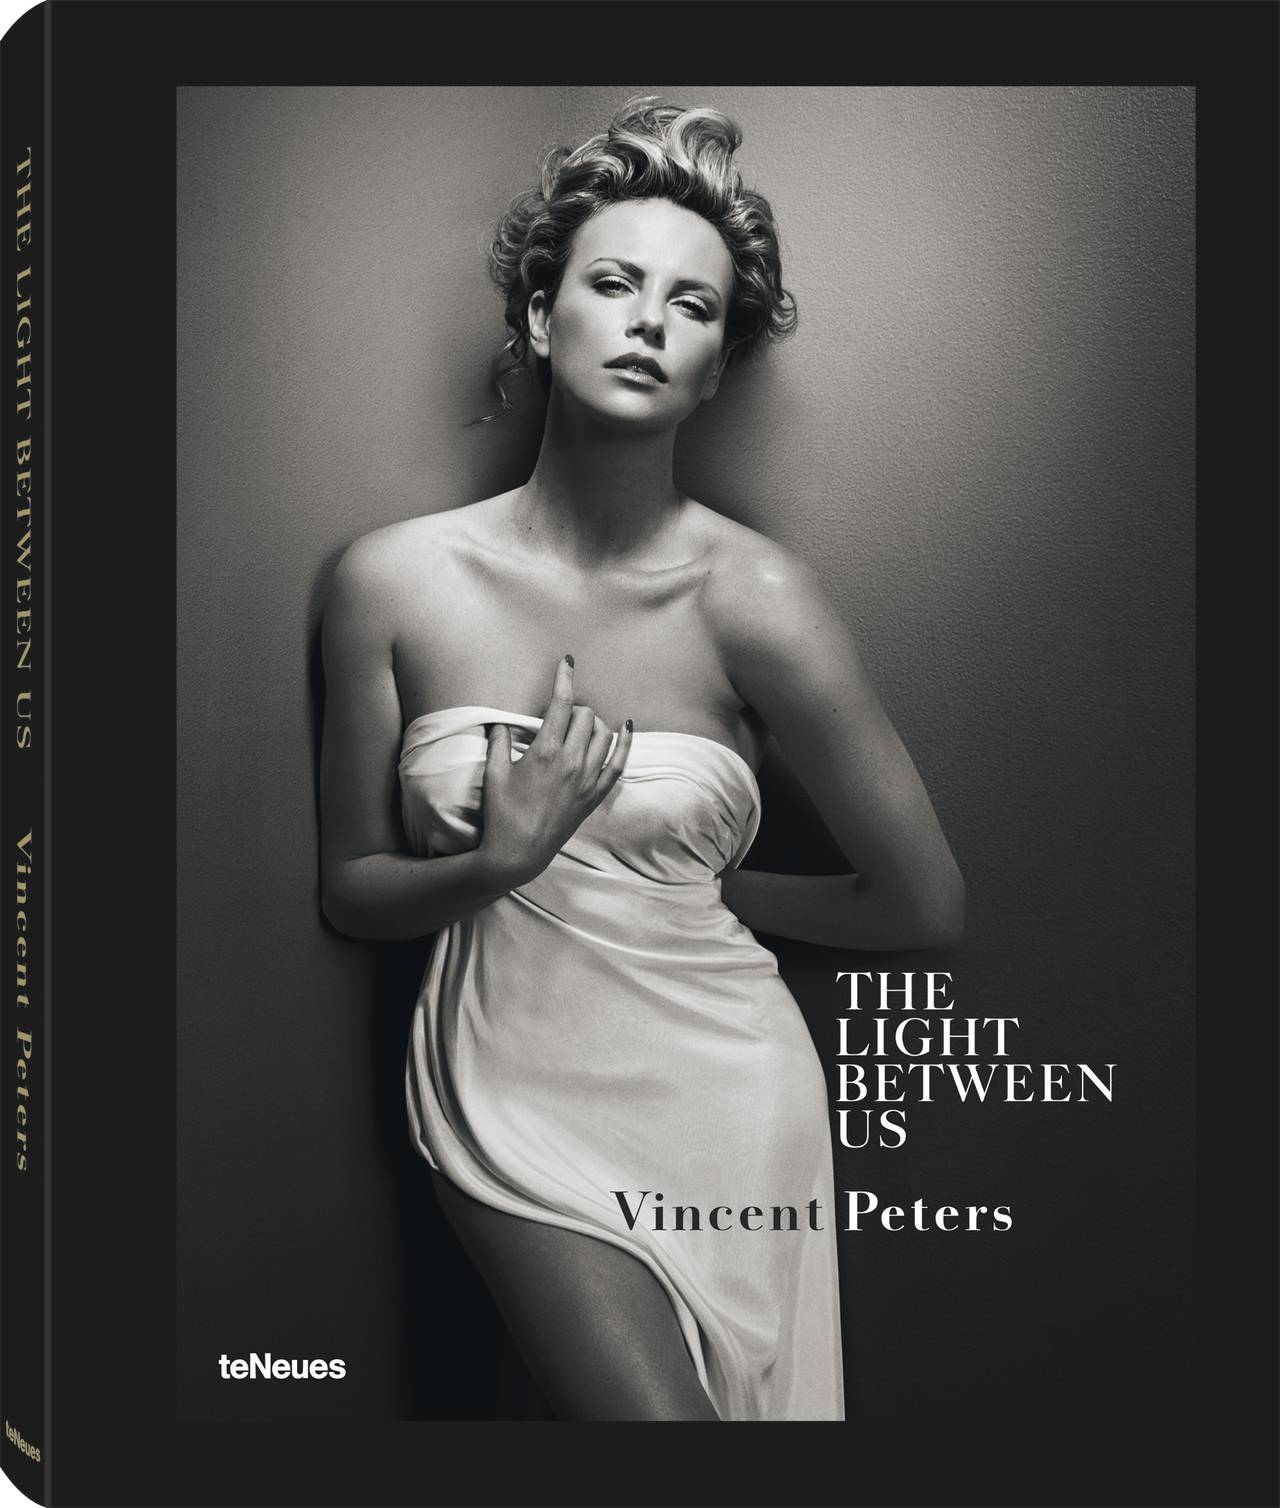 © The Light Between Us by Vincent Peters, published by teNeues, www.teneues.com. Charlize Theron, Photo © 2014 Vincent Peters. All rights reserved.